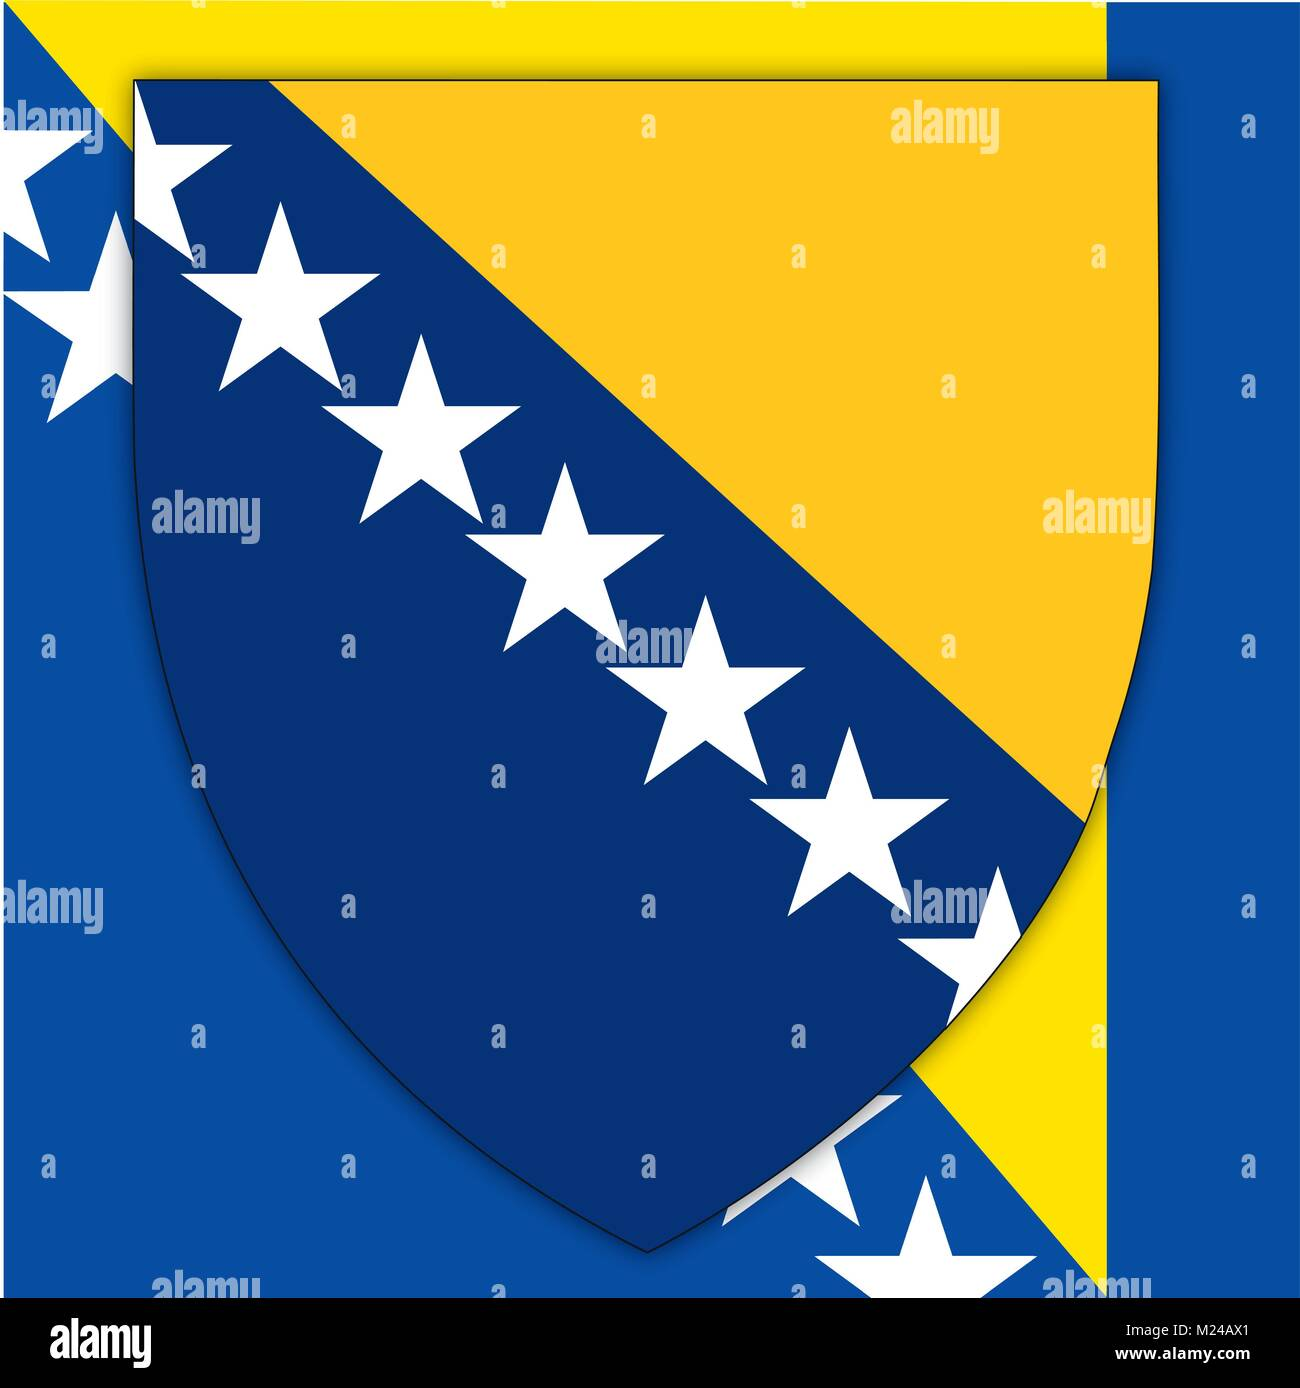 Bosnia and Herzegovina coat of arms and flag, official symbols of the nation - Stock Vector